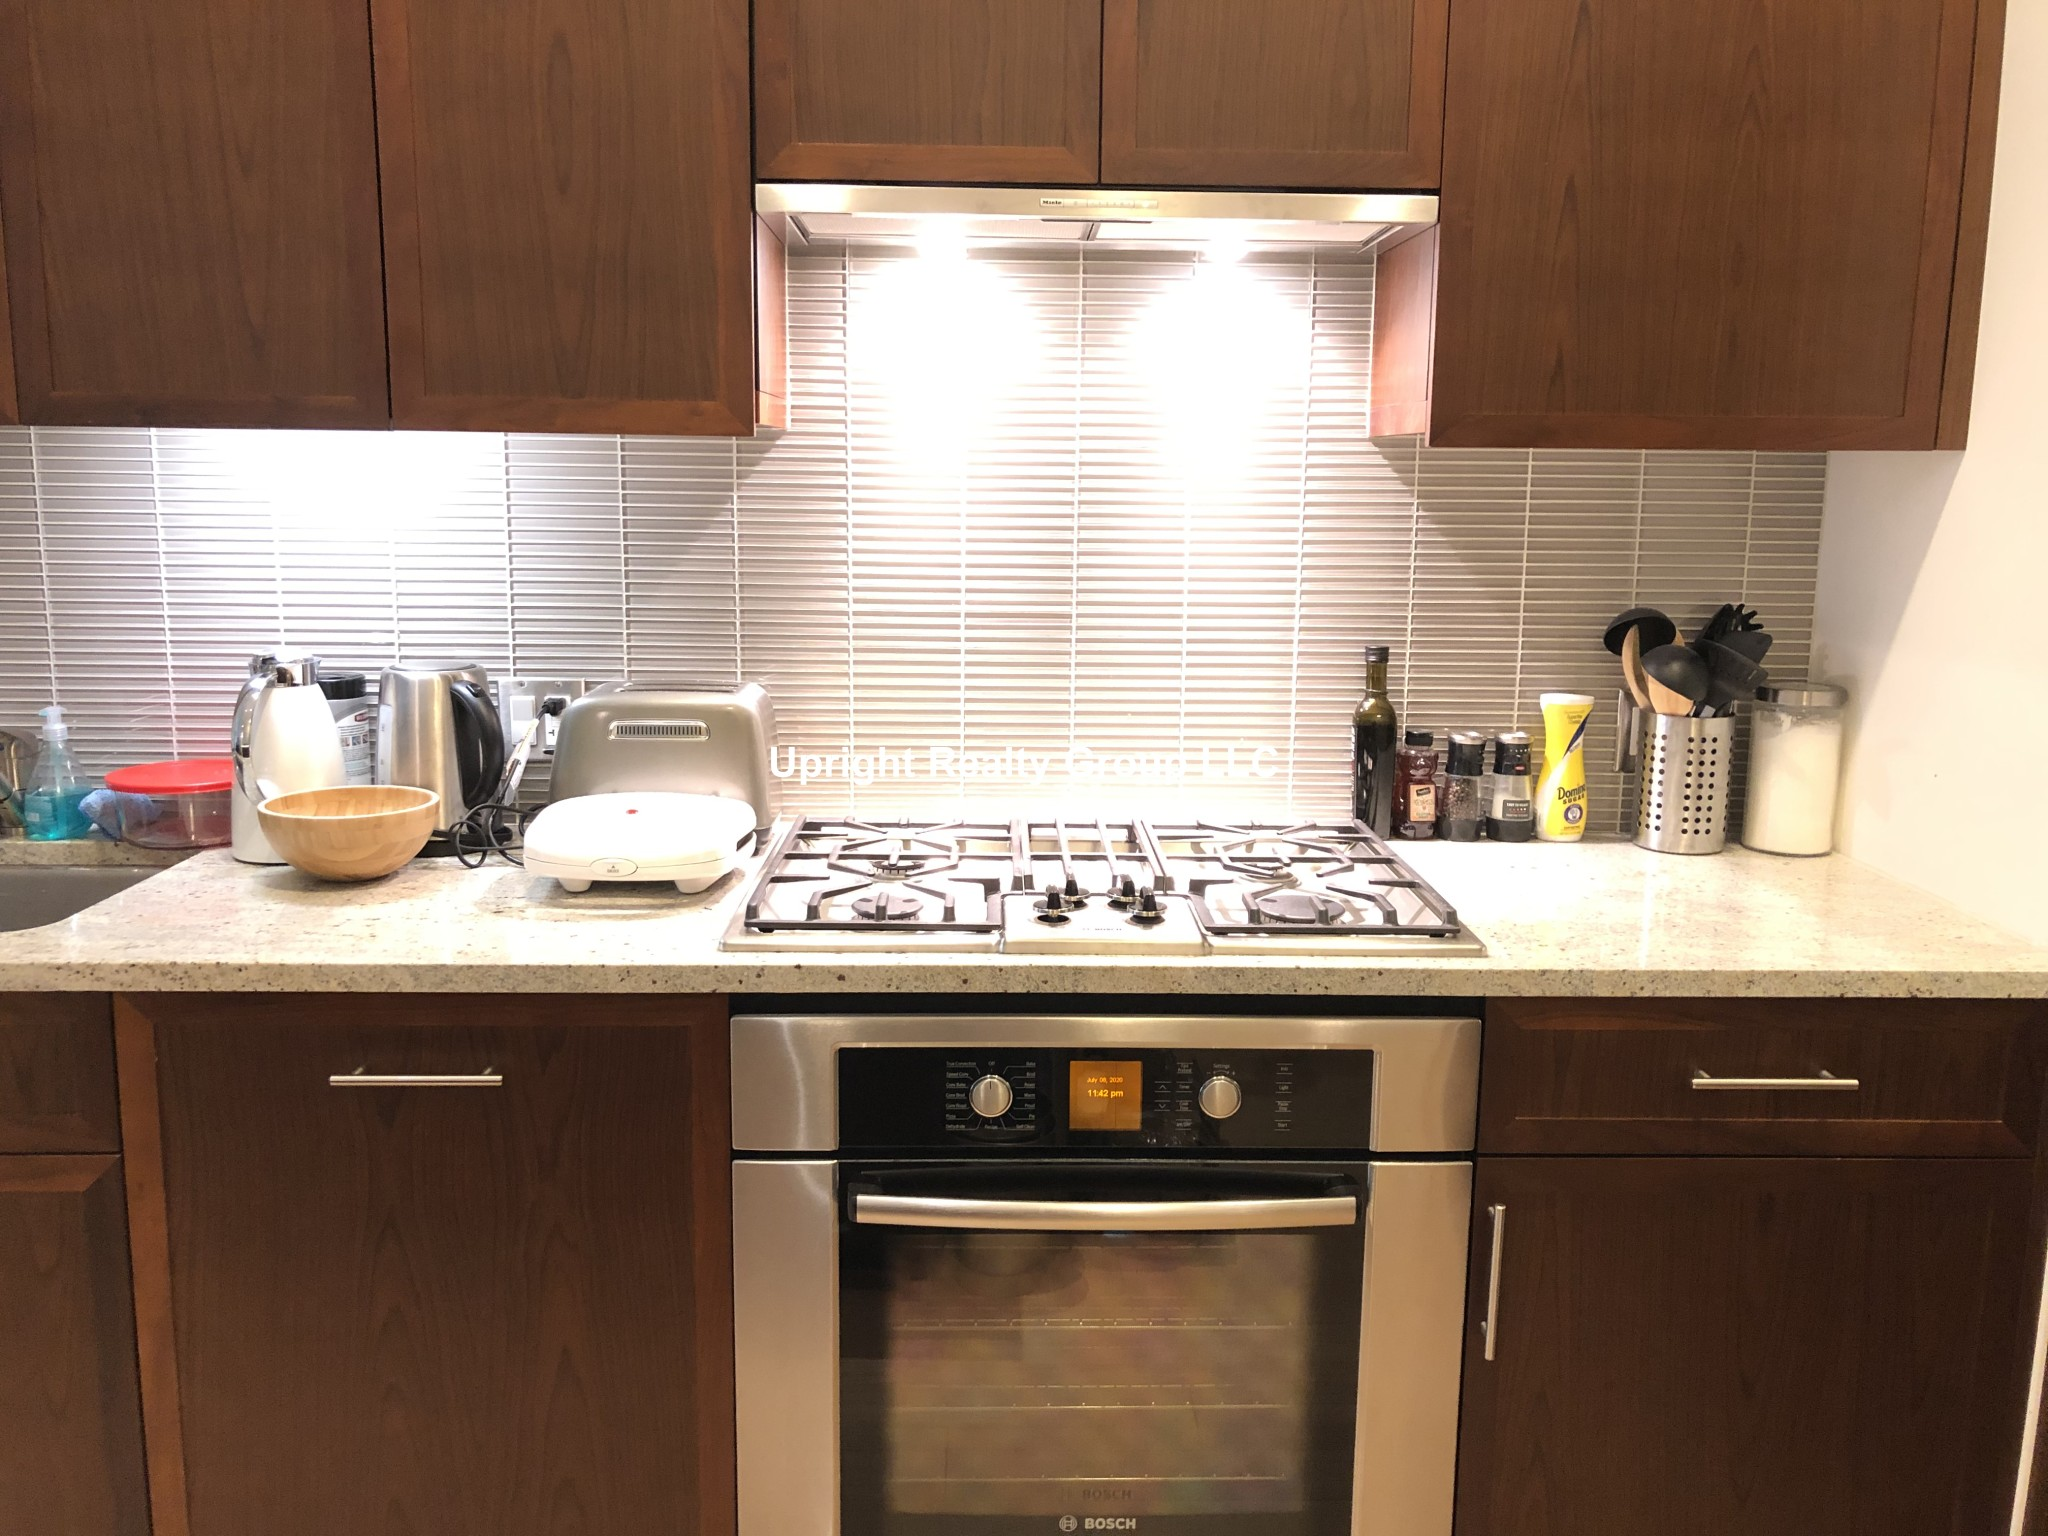 1 Bed, 1 Bath apartment in Boston for $3,700